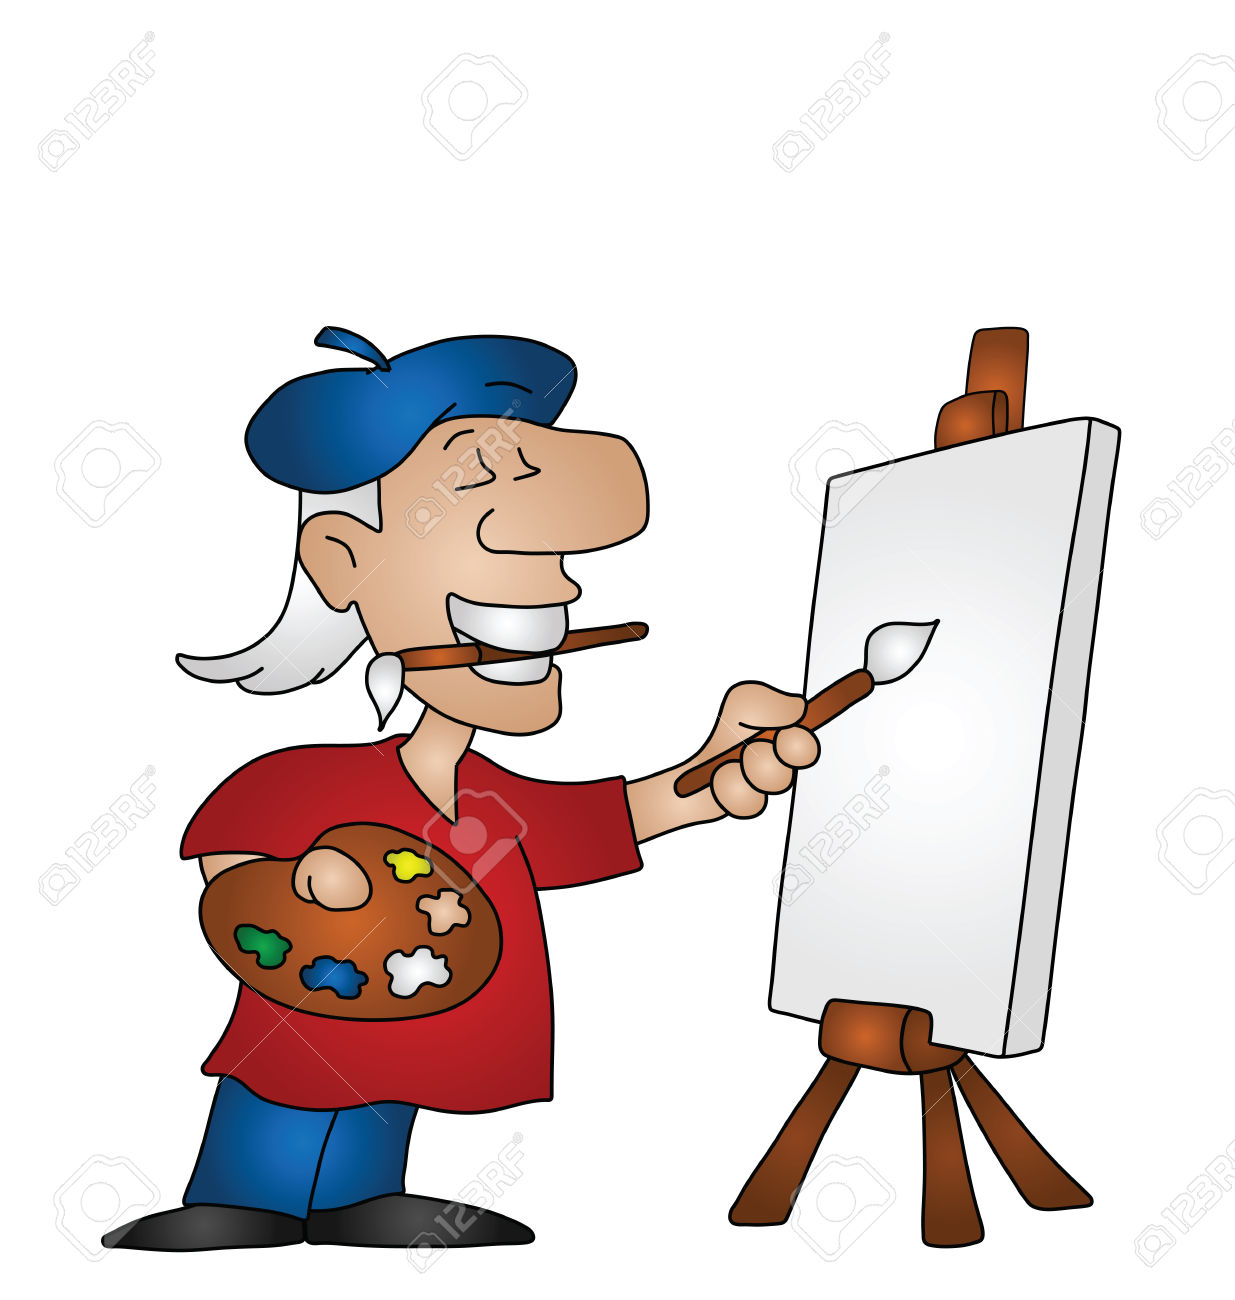 Cartoon Artist With Copy Space On Canvas For Own Text Or Image.